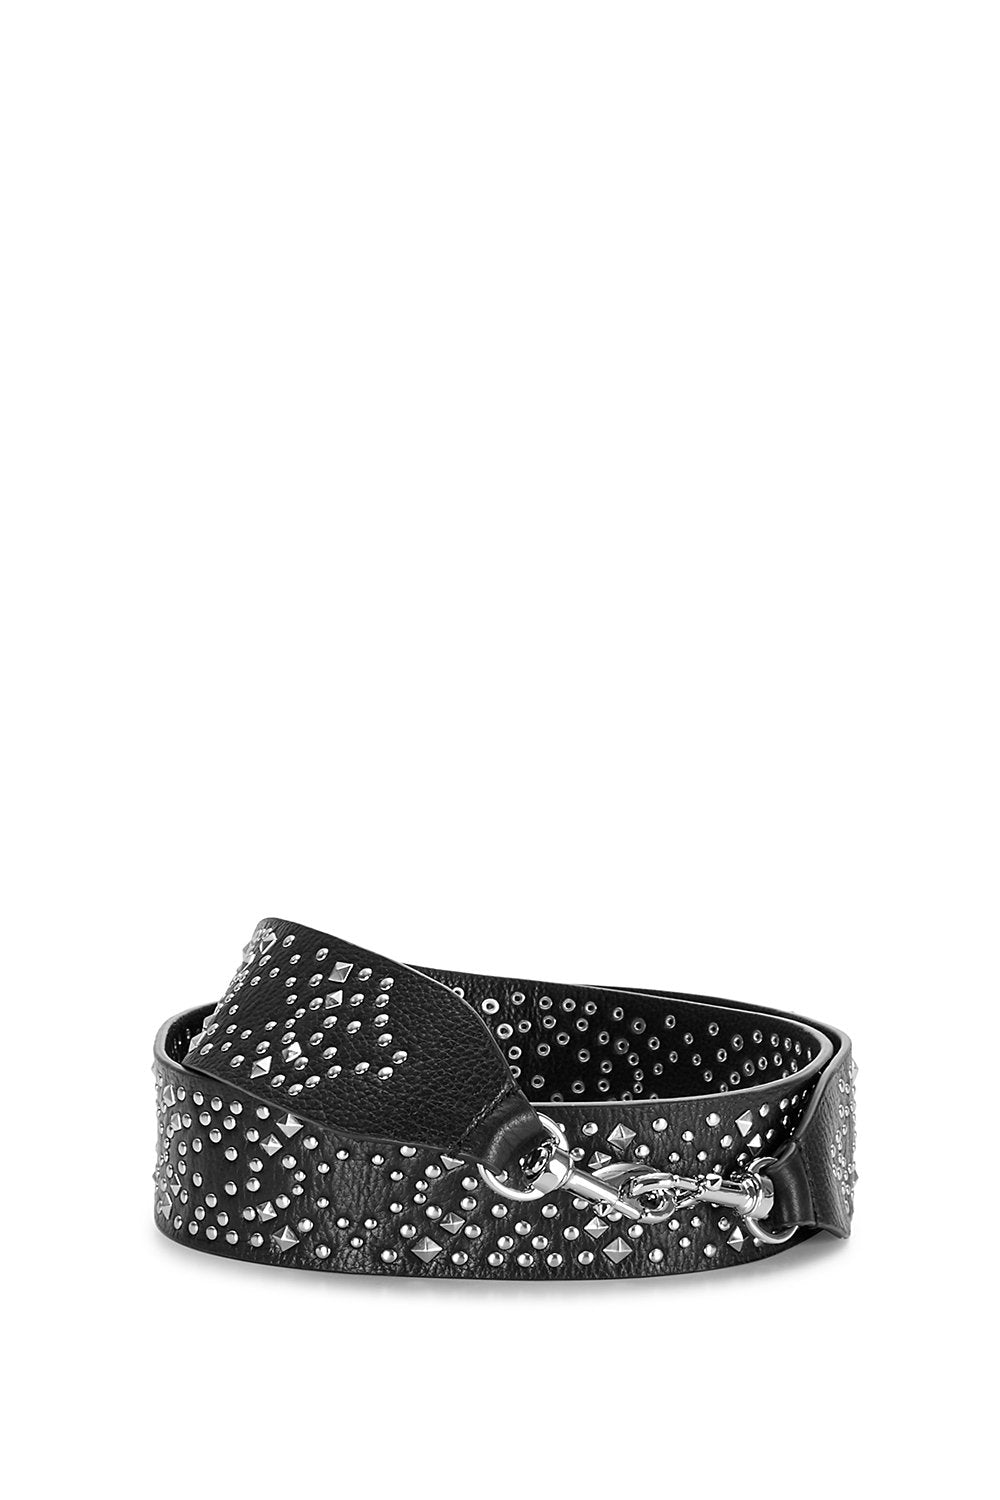 STUDDED GUITAR STRAP